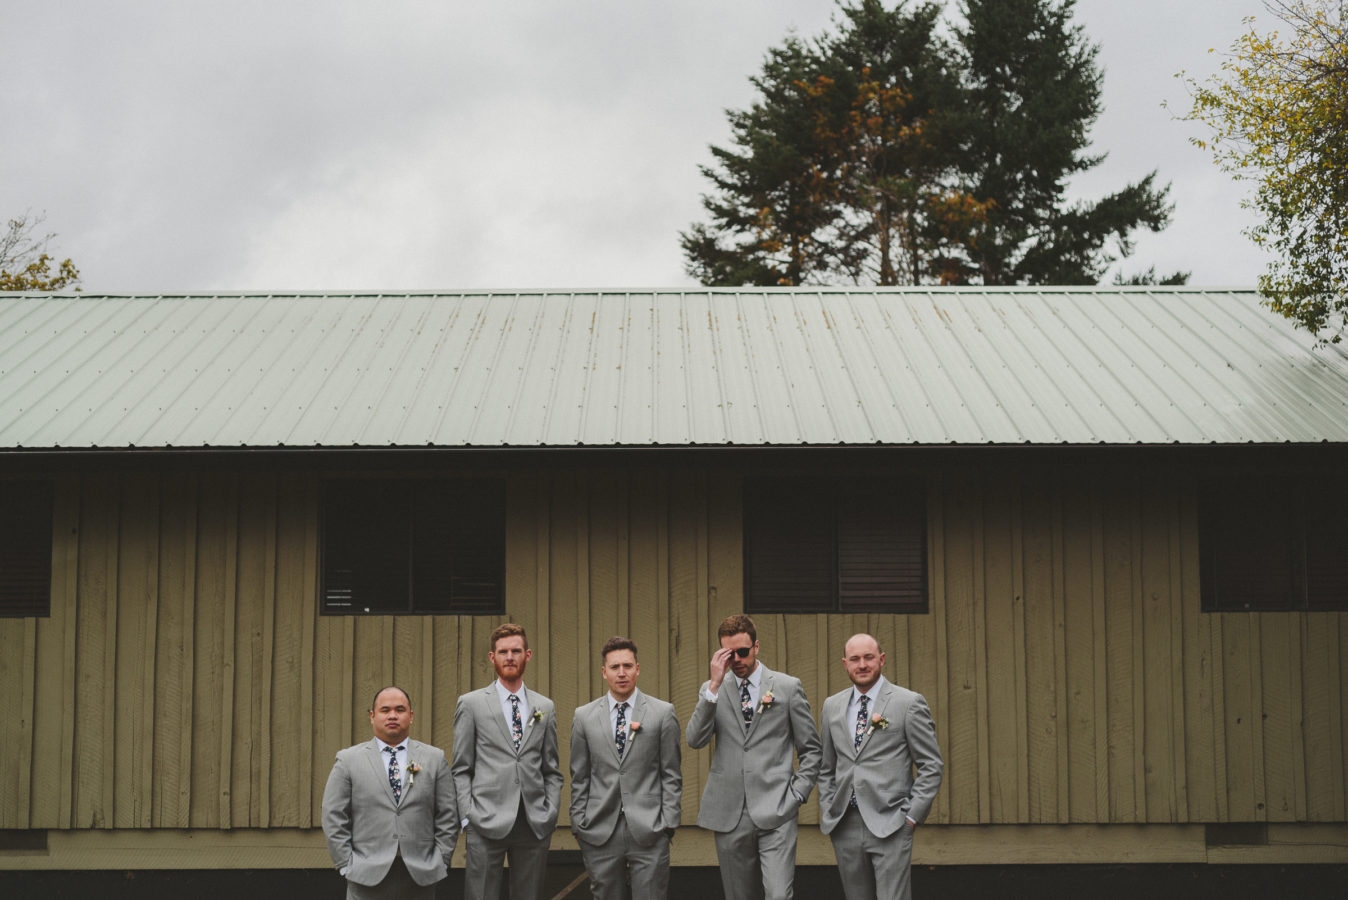 five groomsmen standing and looking at the camera against a rustic cabin